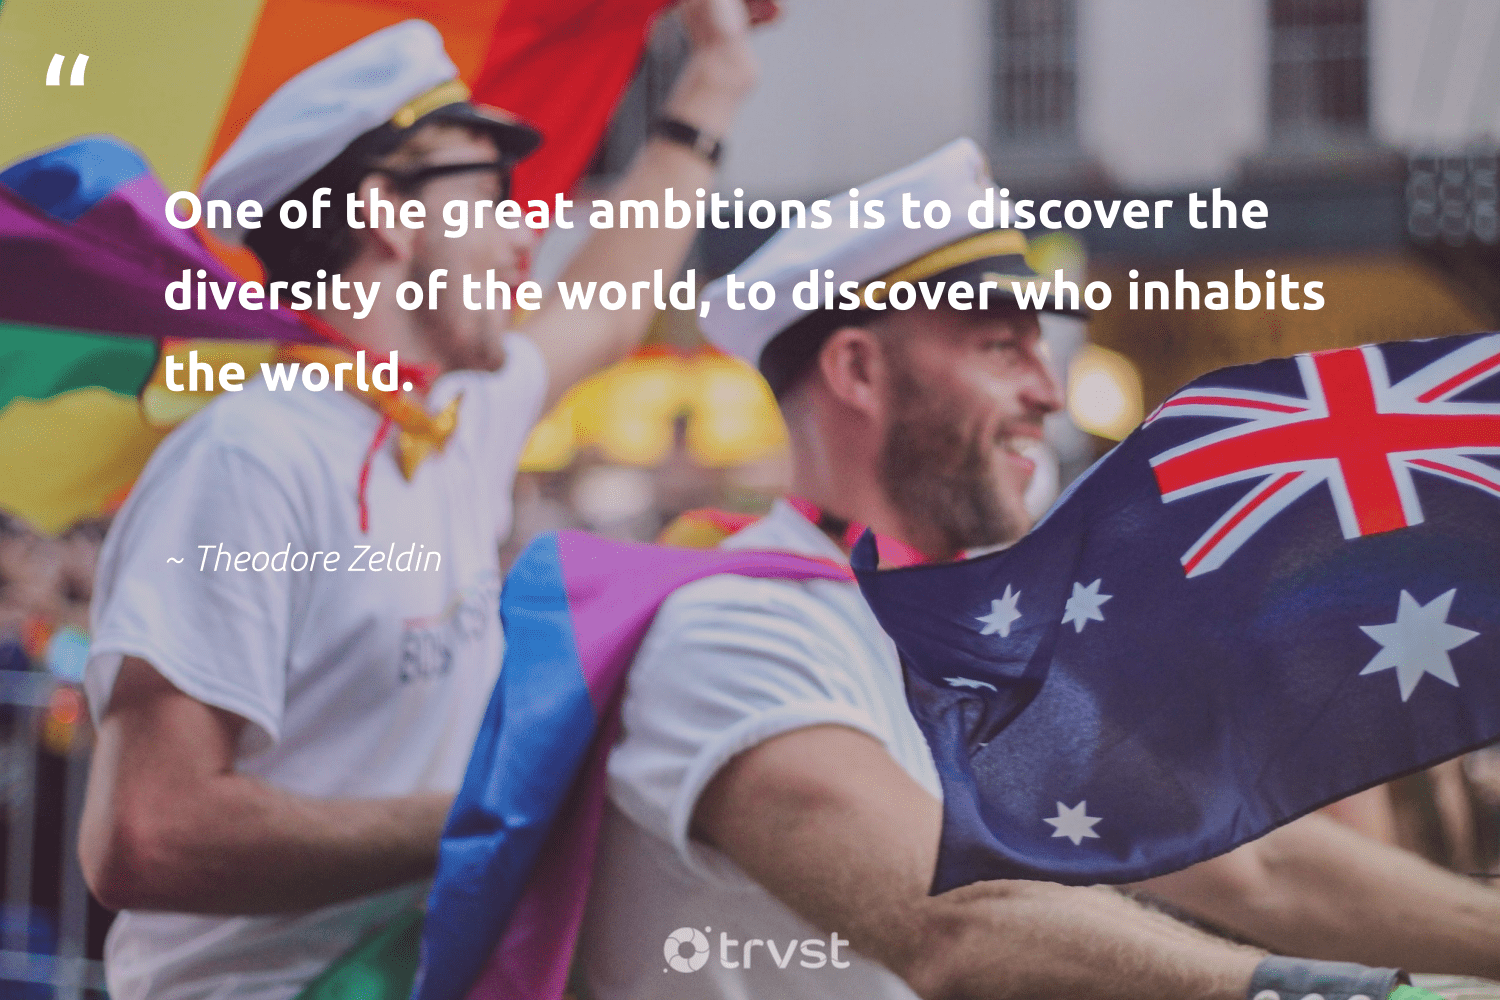 """One of the great ambitions is to discover the diversity of the world, to discover who inhabits the world.""  - Theodore Zeldin #trvst #quotes #diversity #discrimination #representationmatters #socialchange #bethechange #collectiveaction #inclusion #weareallone #socialgood #beinspired"